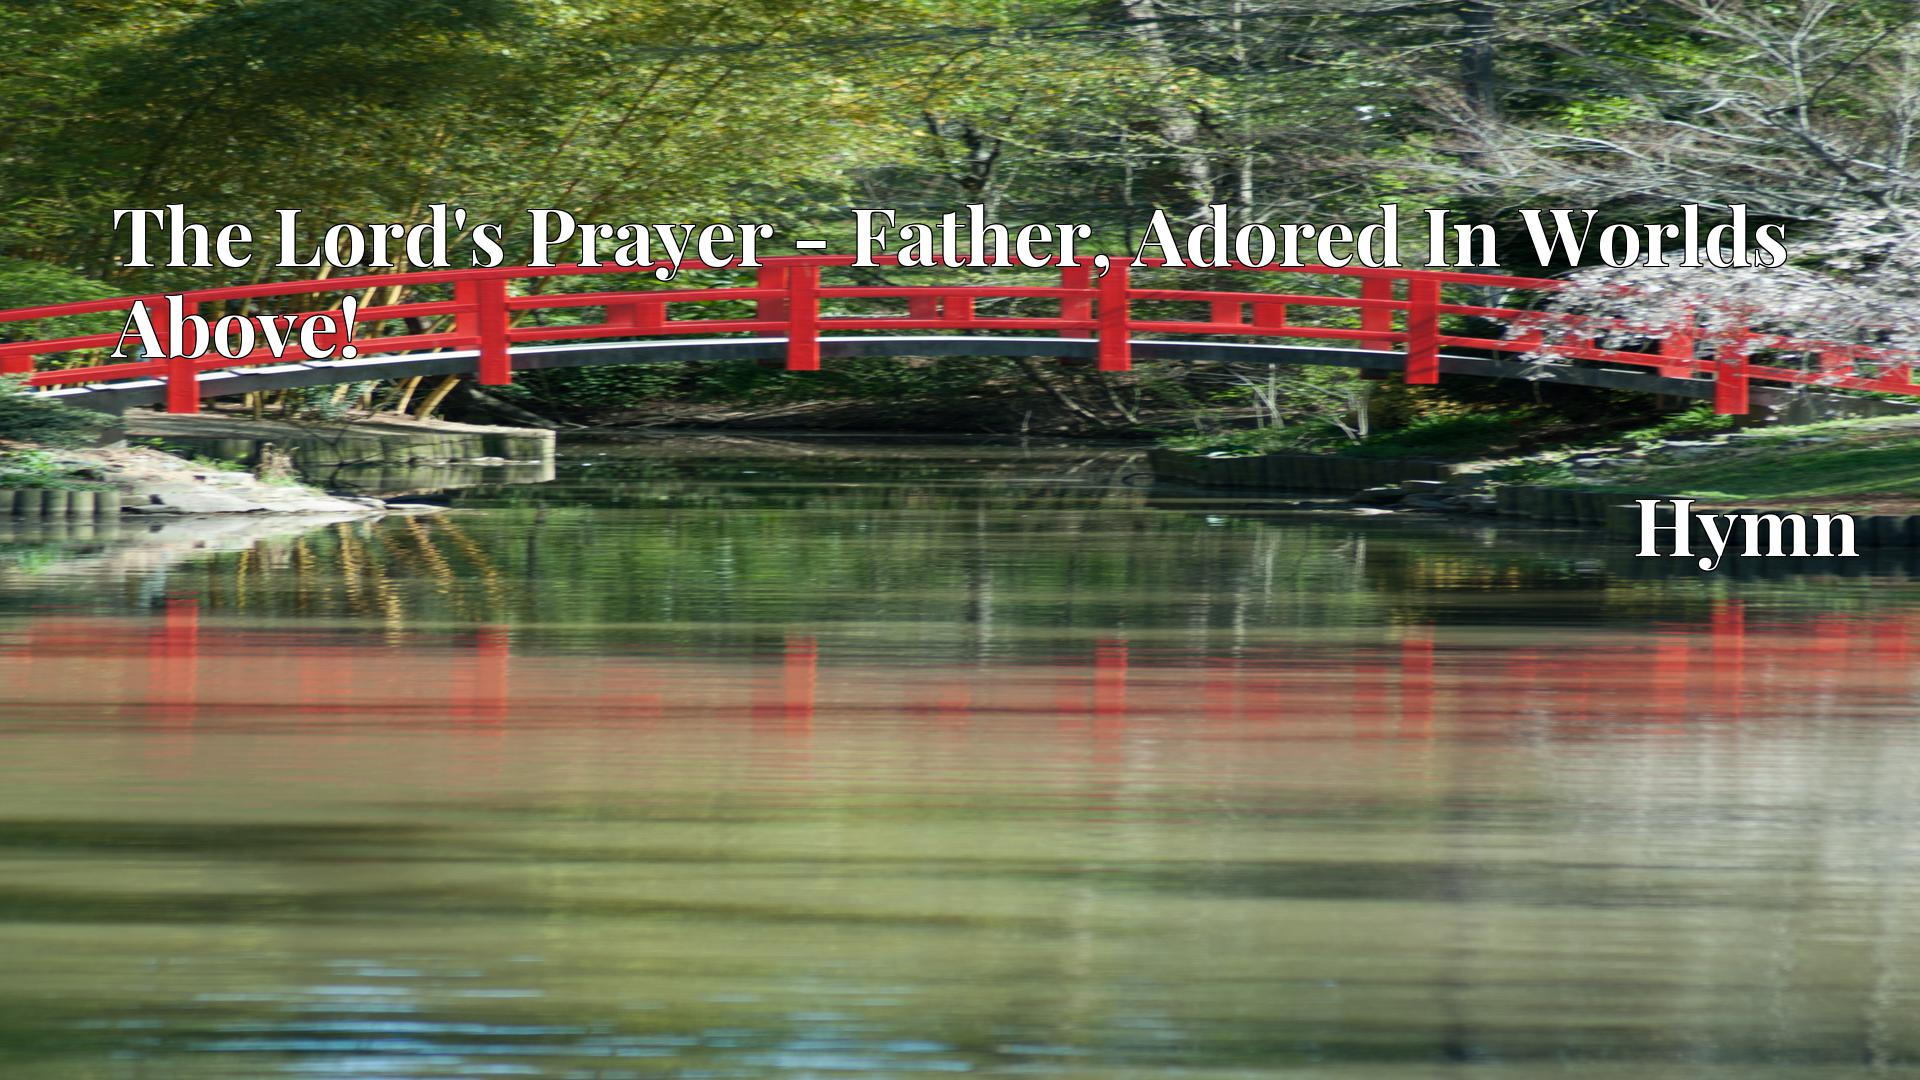 The Lord's Prayer - Father, Adored In Worlds Above! - Hymn